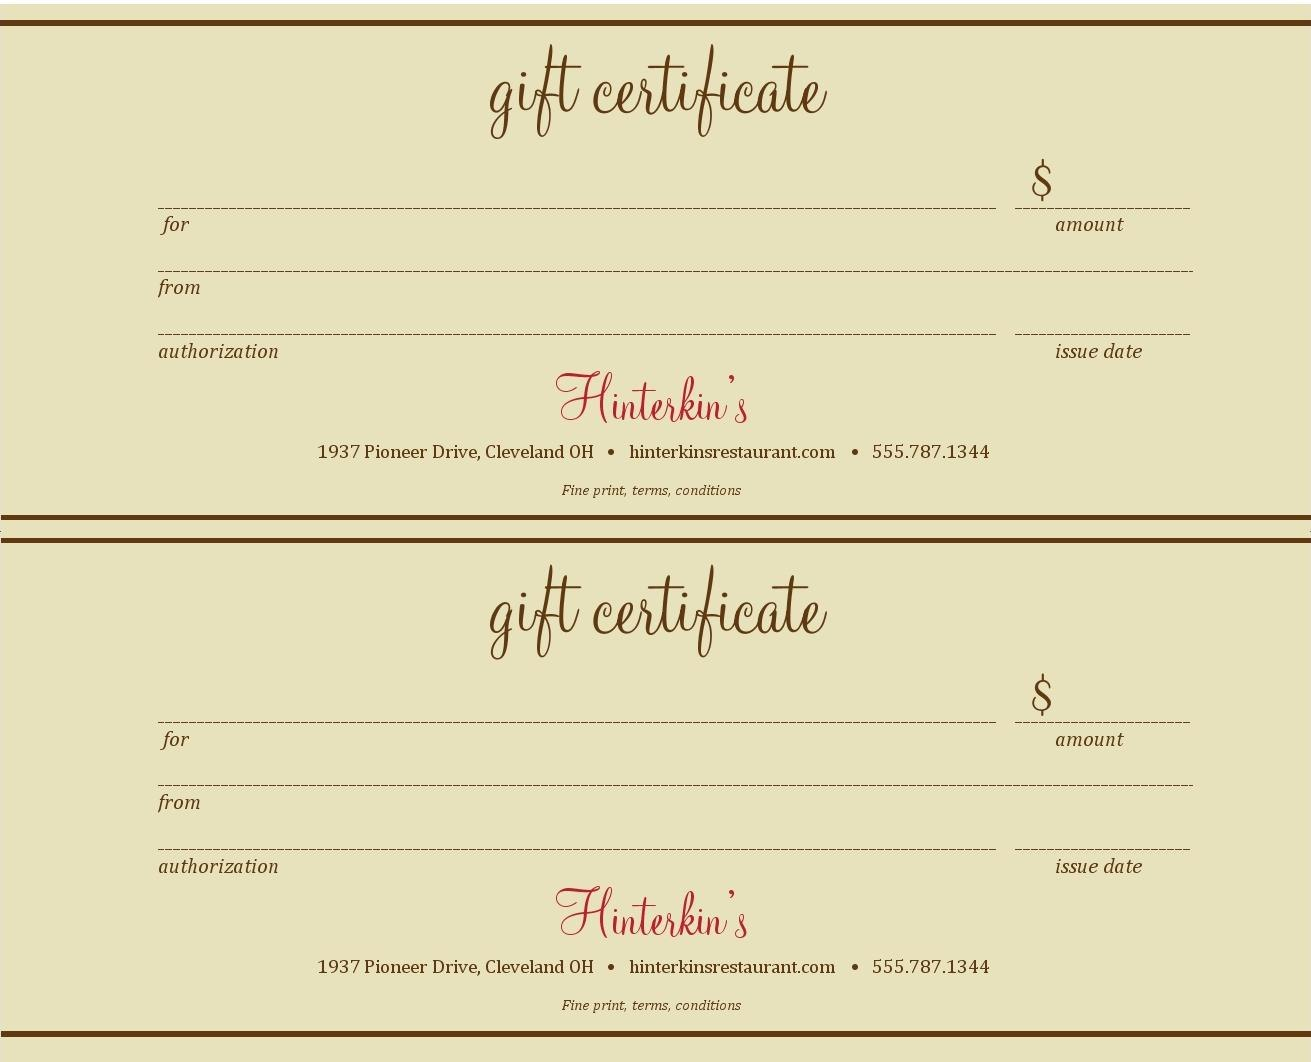 Certificate Templates Best Photos Of Gift Certificate Templates Throughout Restaurant Gift Certificate Template